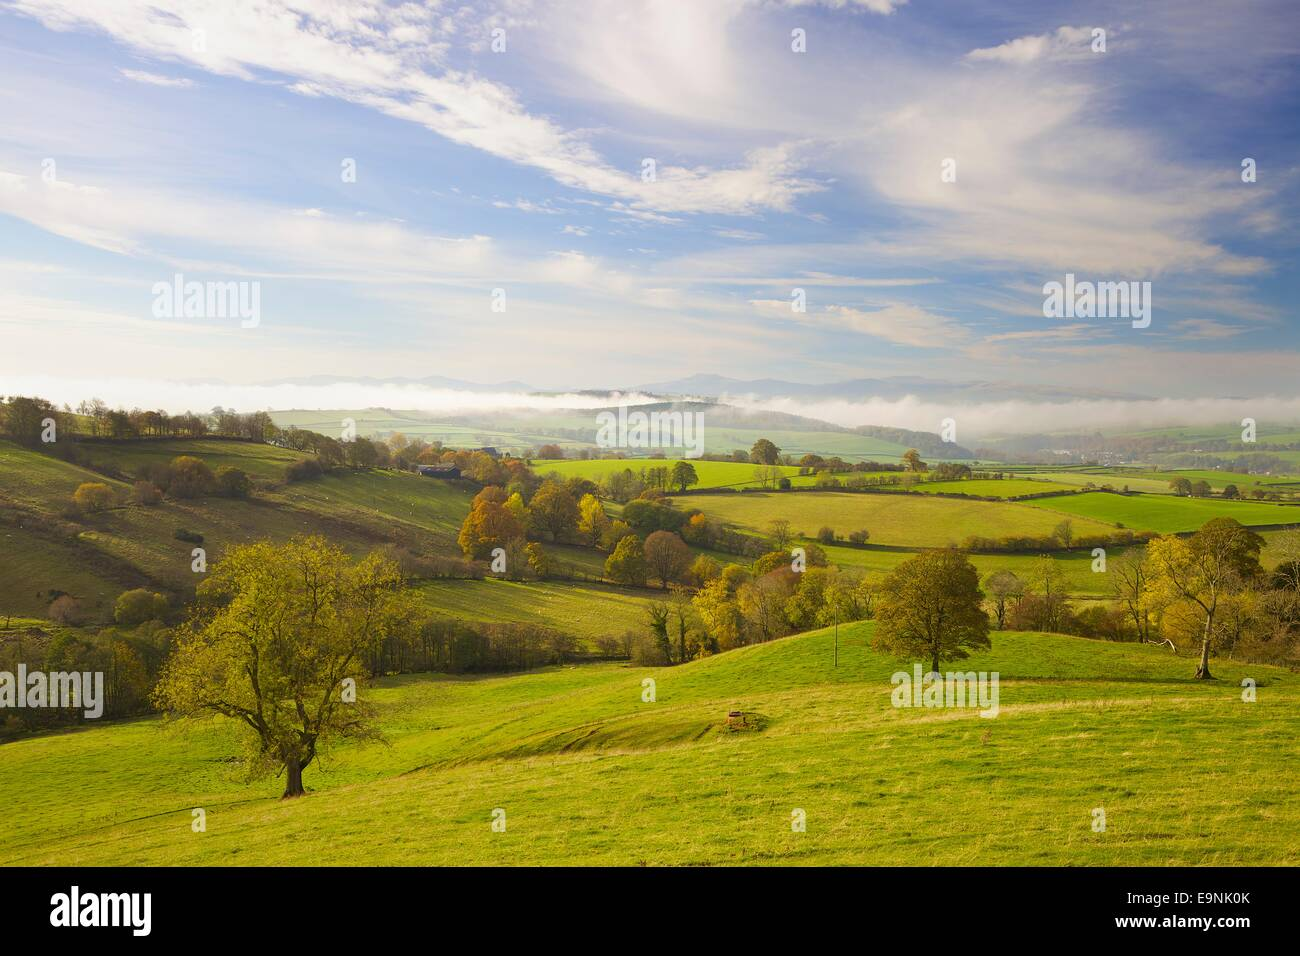 Tree in rural evening scene, Eden Valley in Cumbria, near Ainstable looking towards The Lake District. Autumn - Stock Image